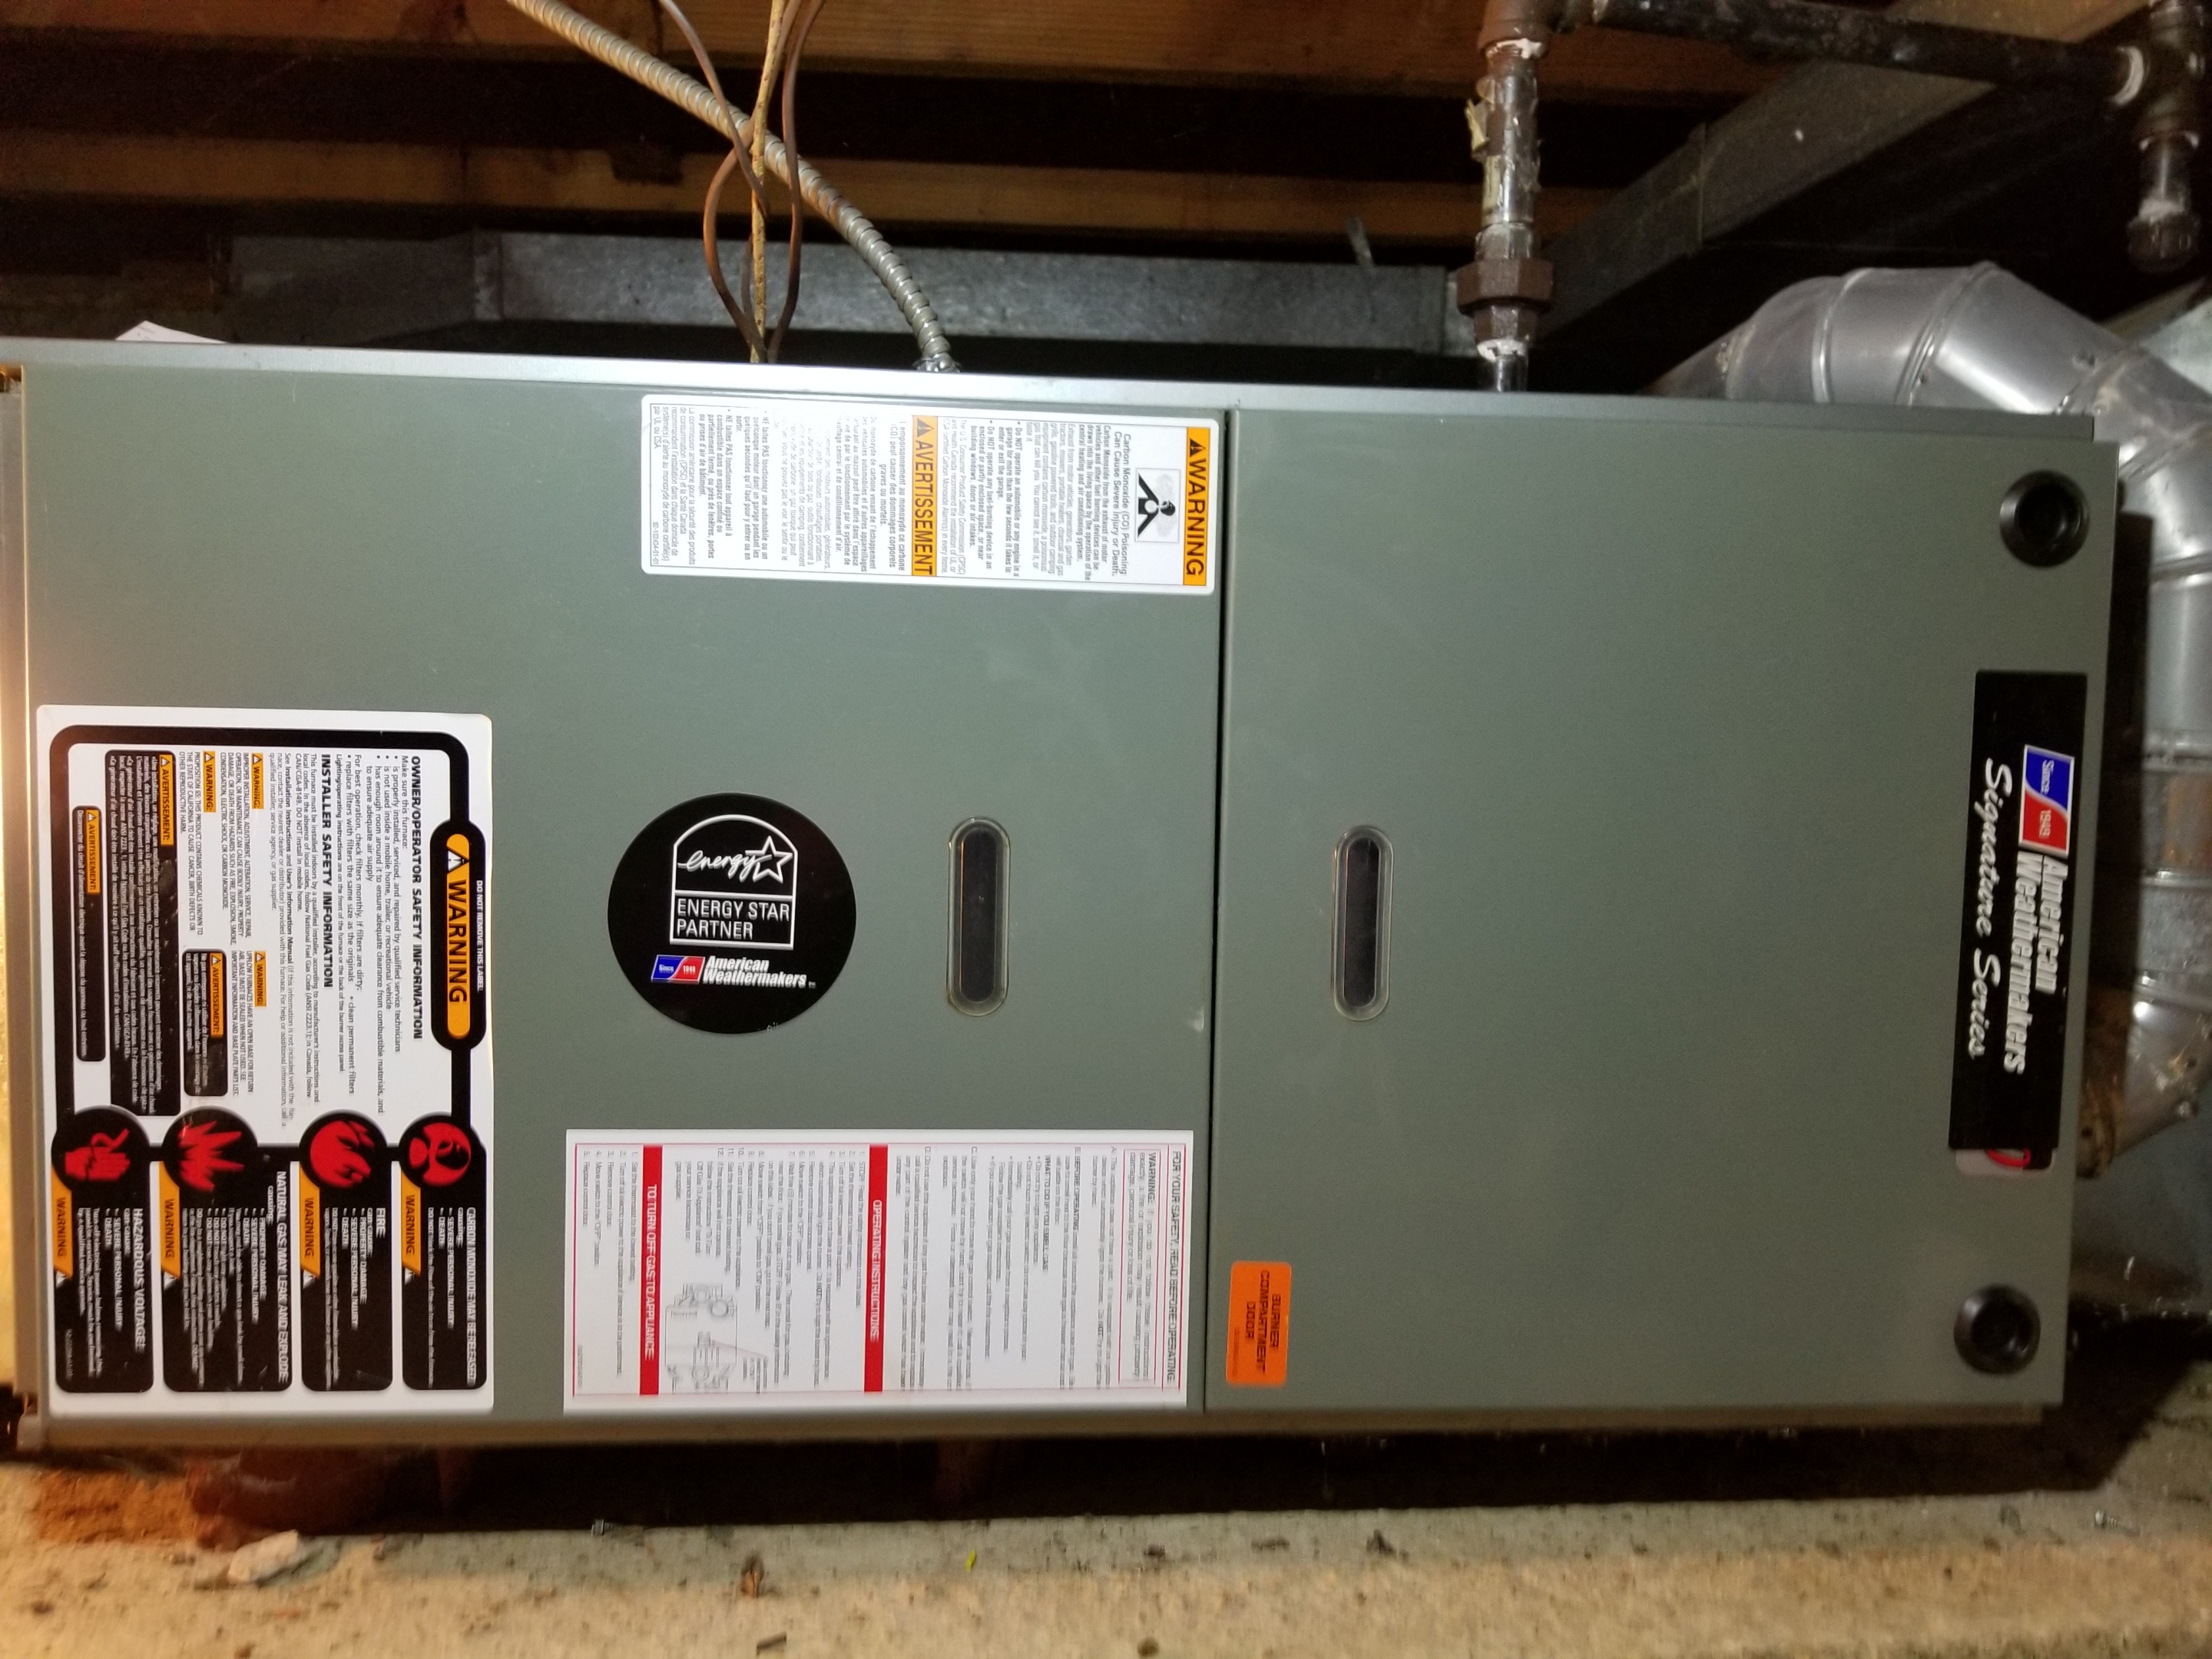 Repaired Rheem furnace and made adjustments to improve the overall efficiency and life expectancy of the equipment